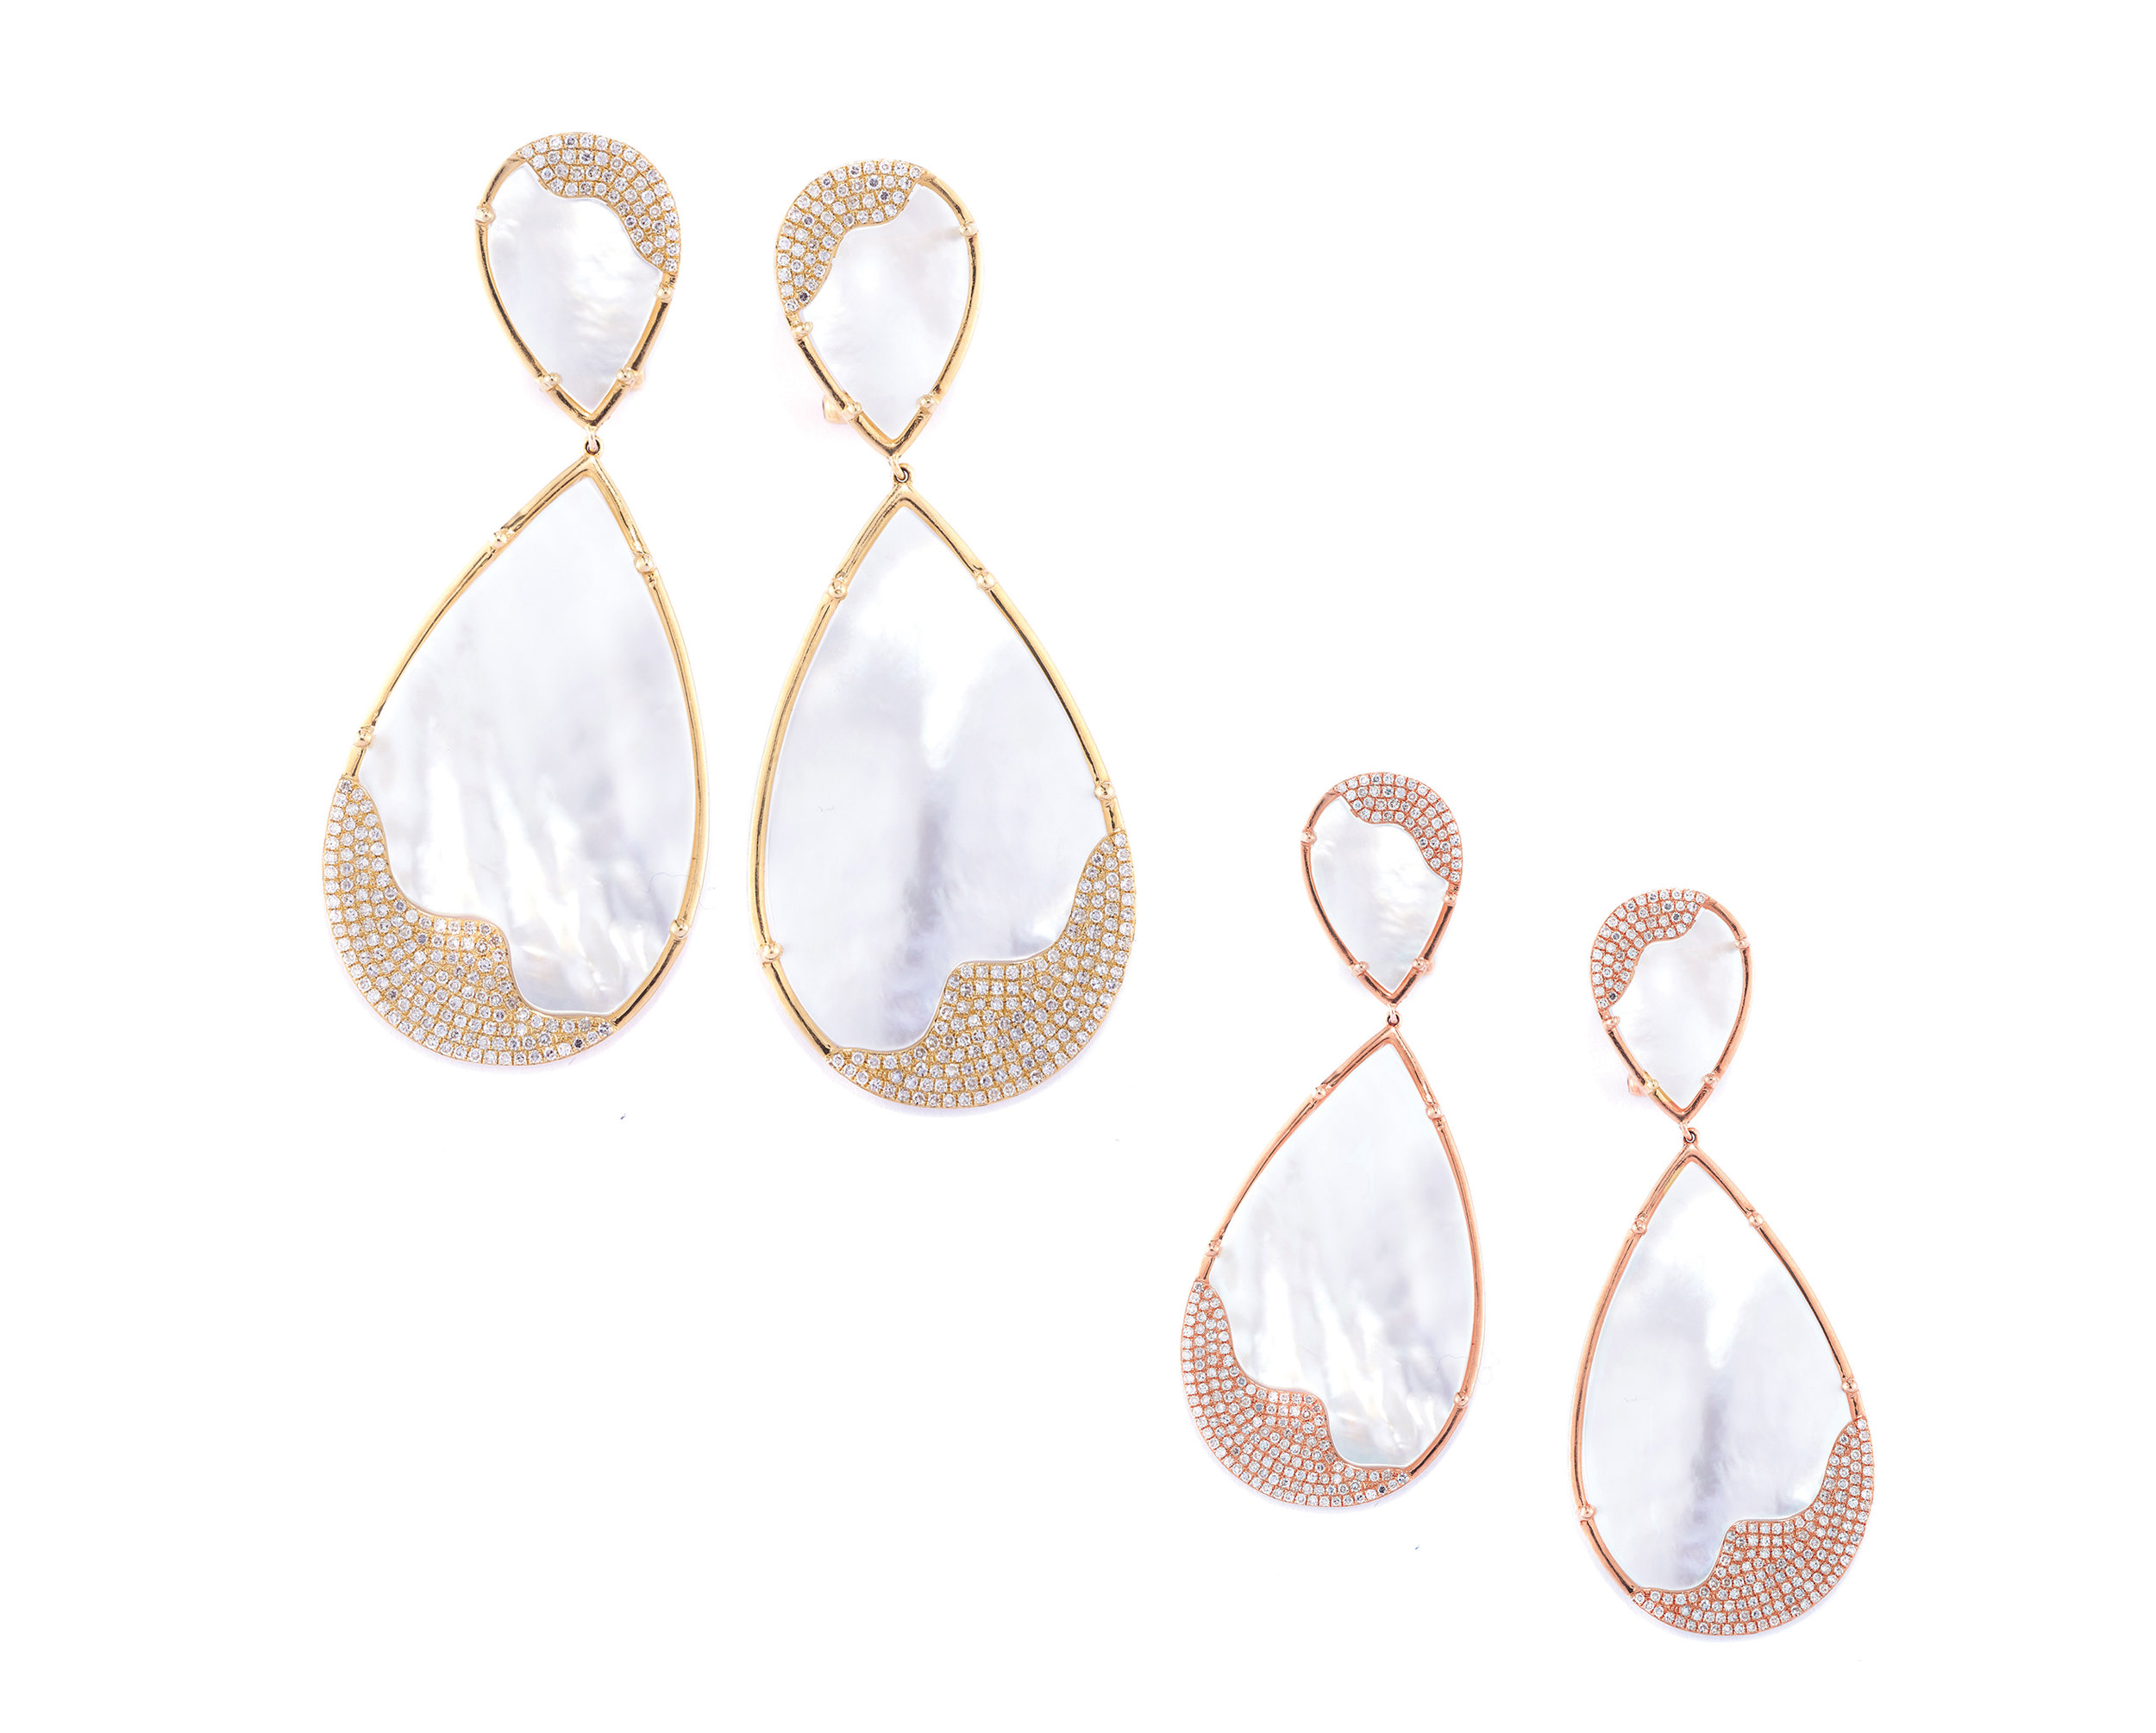 Mia Luna Classic Drop Earrings - The cornerstone of the collection, these chic drop earrings move gracefully capturing an elegant mood suitable for both day or night. Contemporary and stylish, this is the PATRICIA ROBALINO piece every woman wants to own. Available in the classic size or in a smaller version.